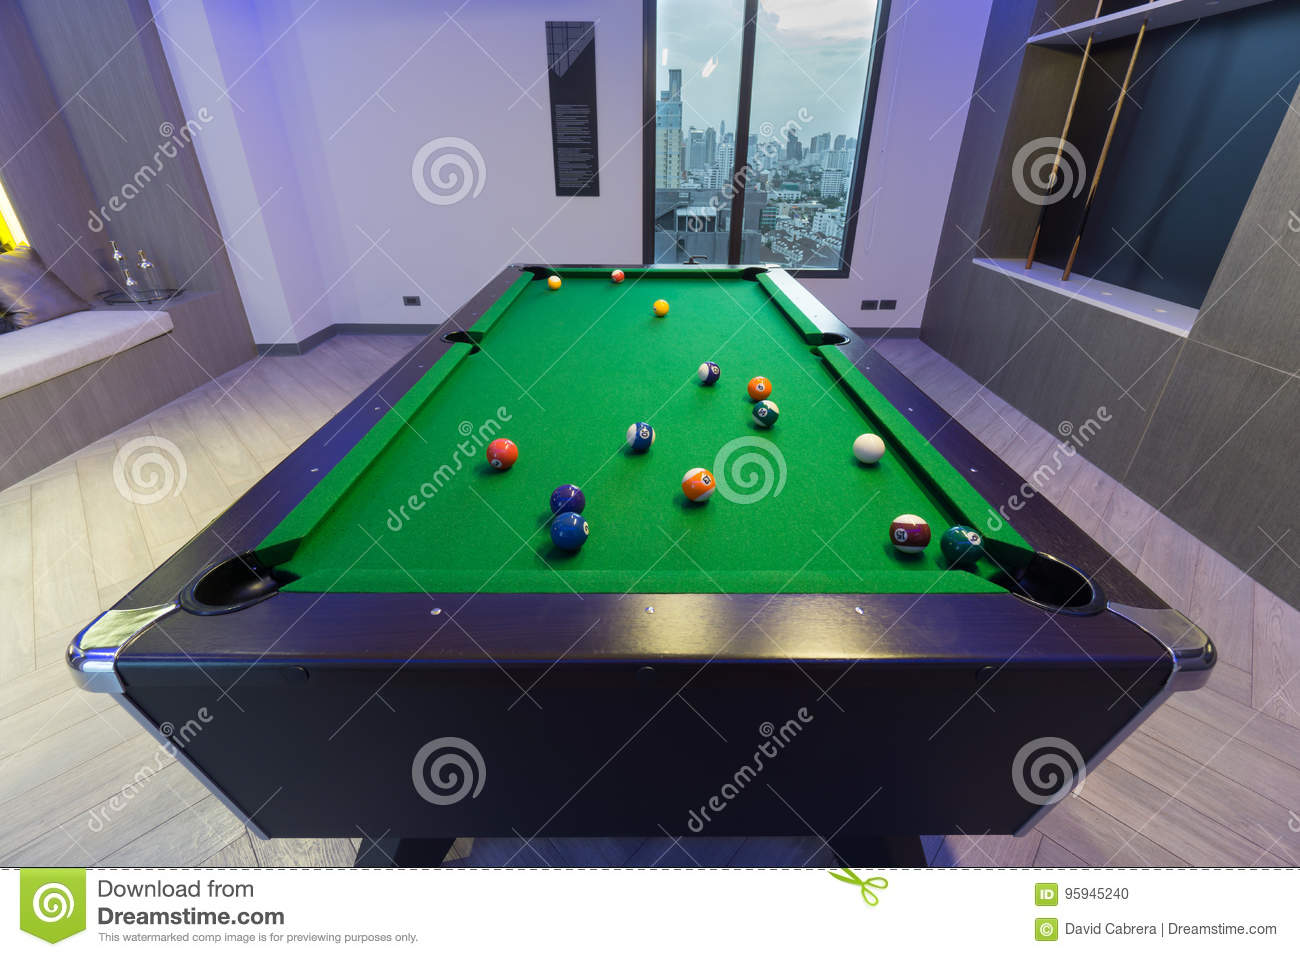 Snooker Pool Billiards green table with complete set of balls in a middle of a game in a modern games room